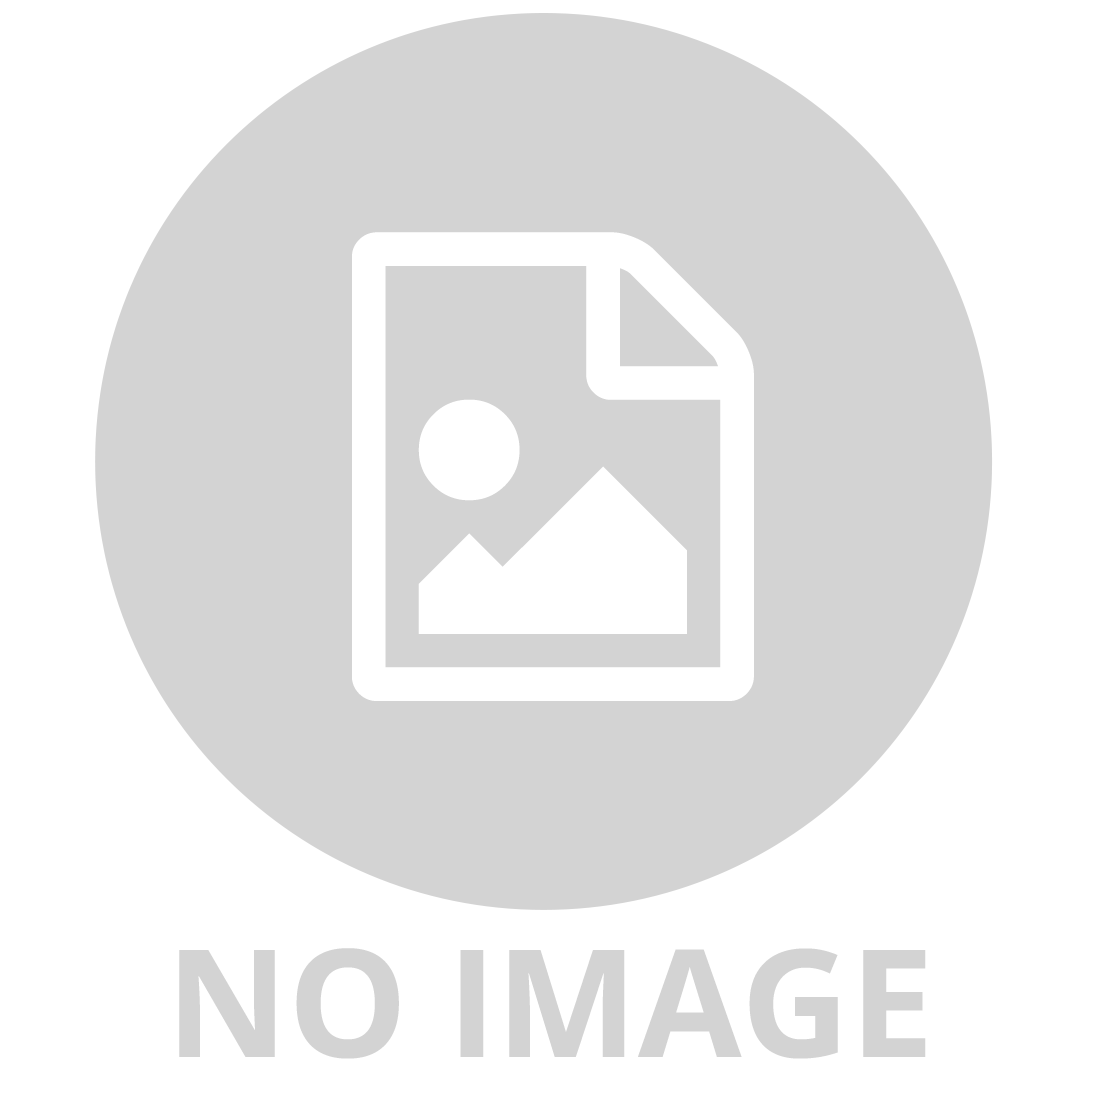 K & S ROUND BRASS TUBE 19/32 (15.08mm)